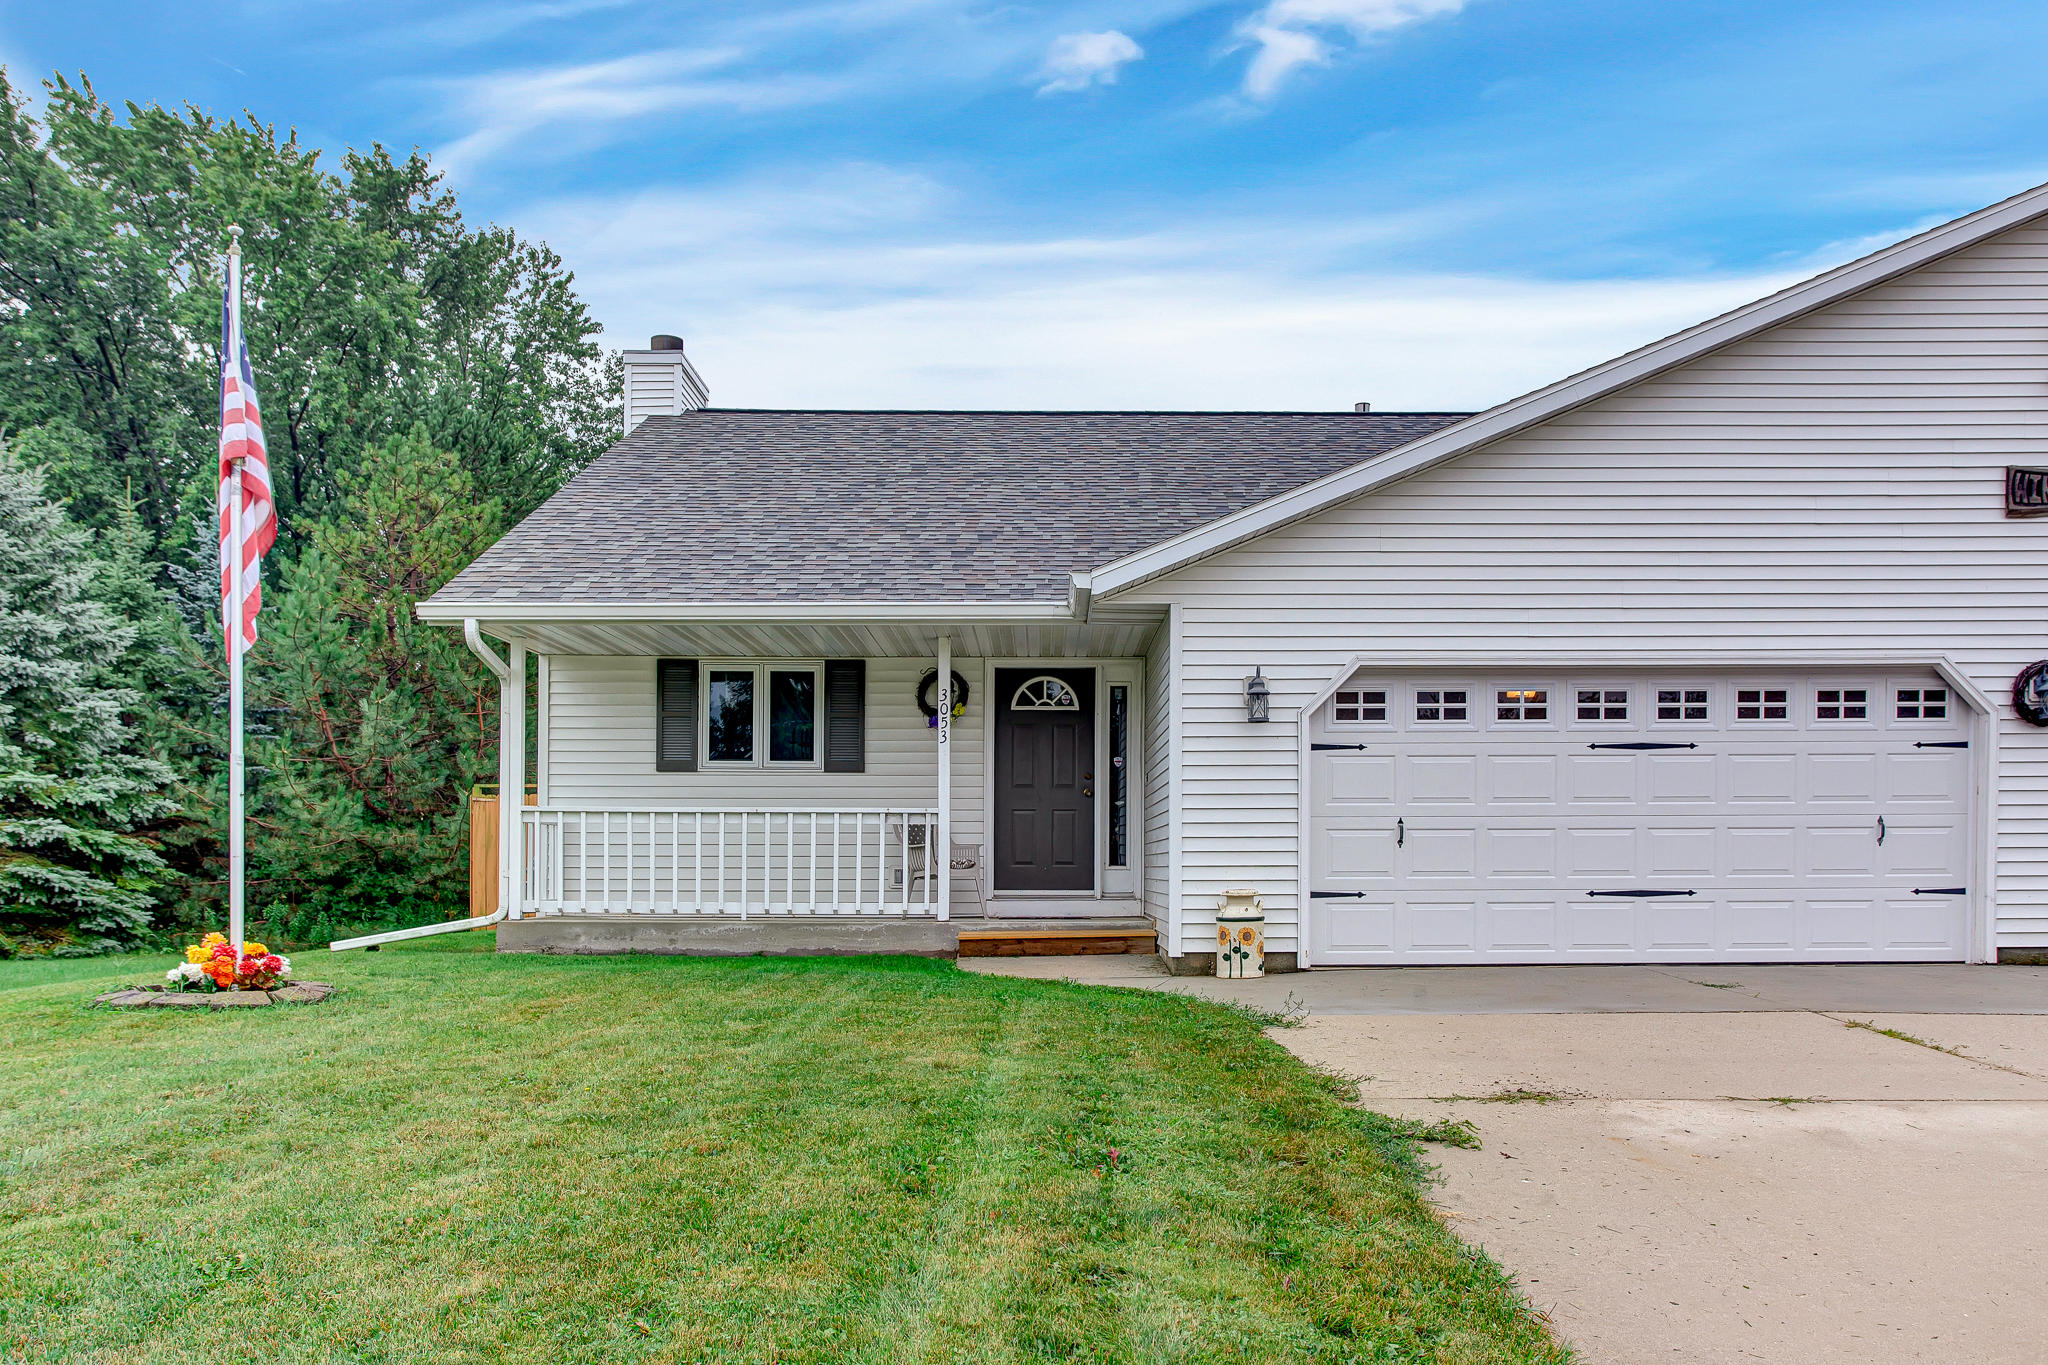 W3053 Old County Rd PP, Sheboygan Falls, Wisconsin 53085, 3 Bedrooms Bedrooms, 5 Rooms Rooms,2 BathroomsBathrooms,Condominiums,For Sale,Old County Rd PP,1,1707712